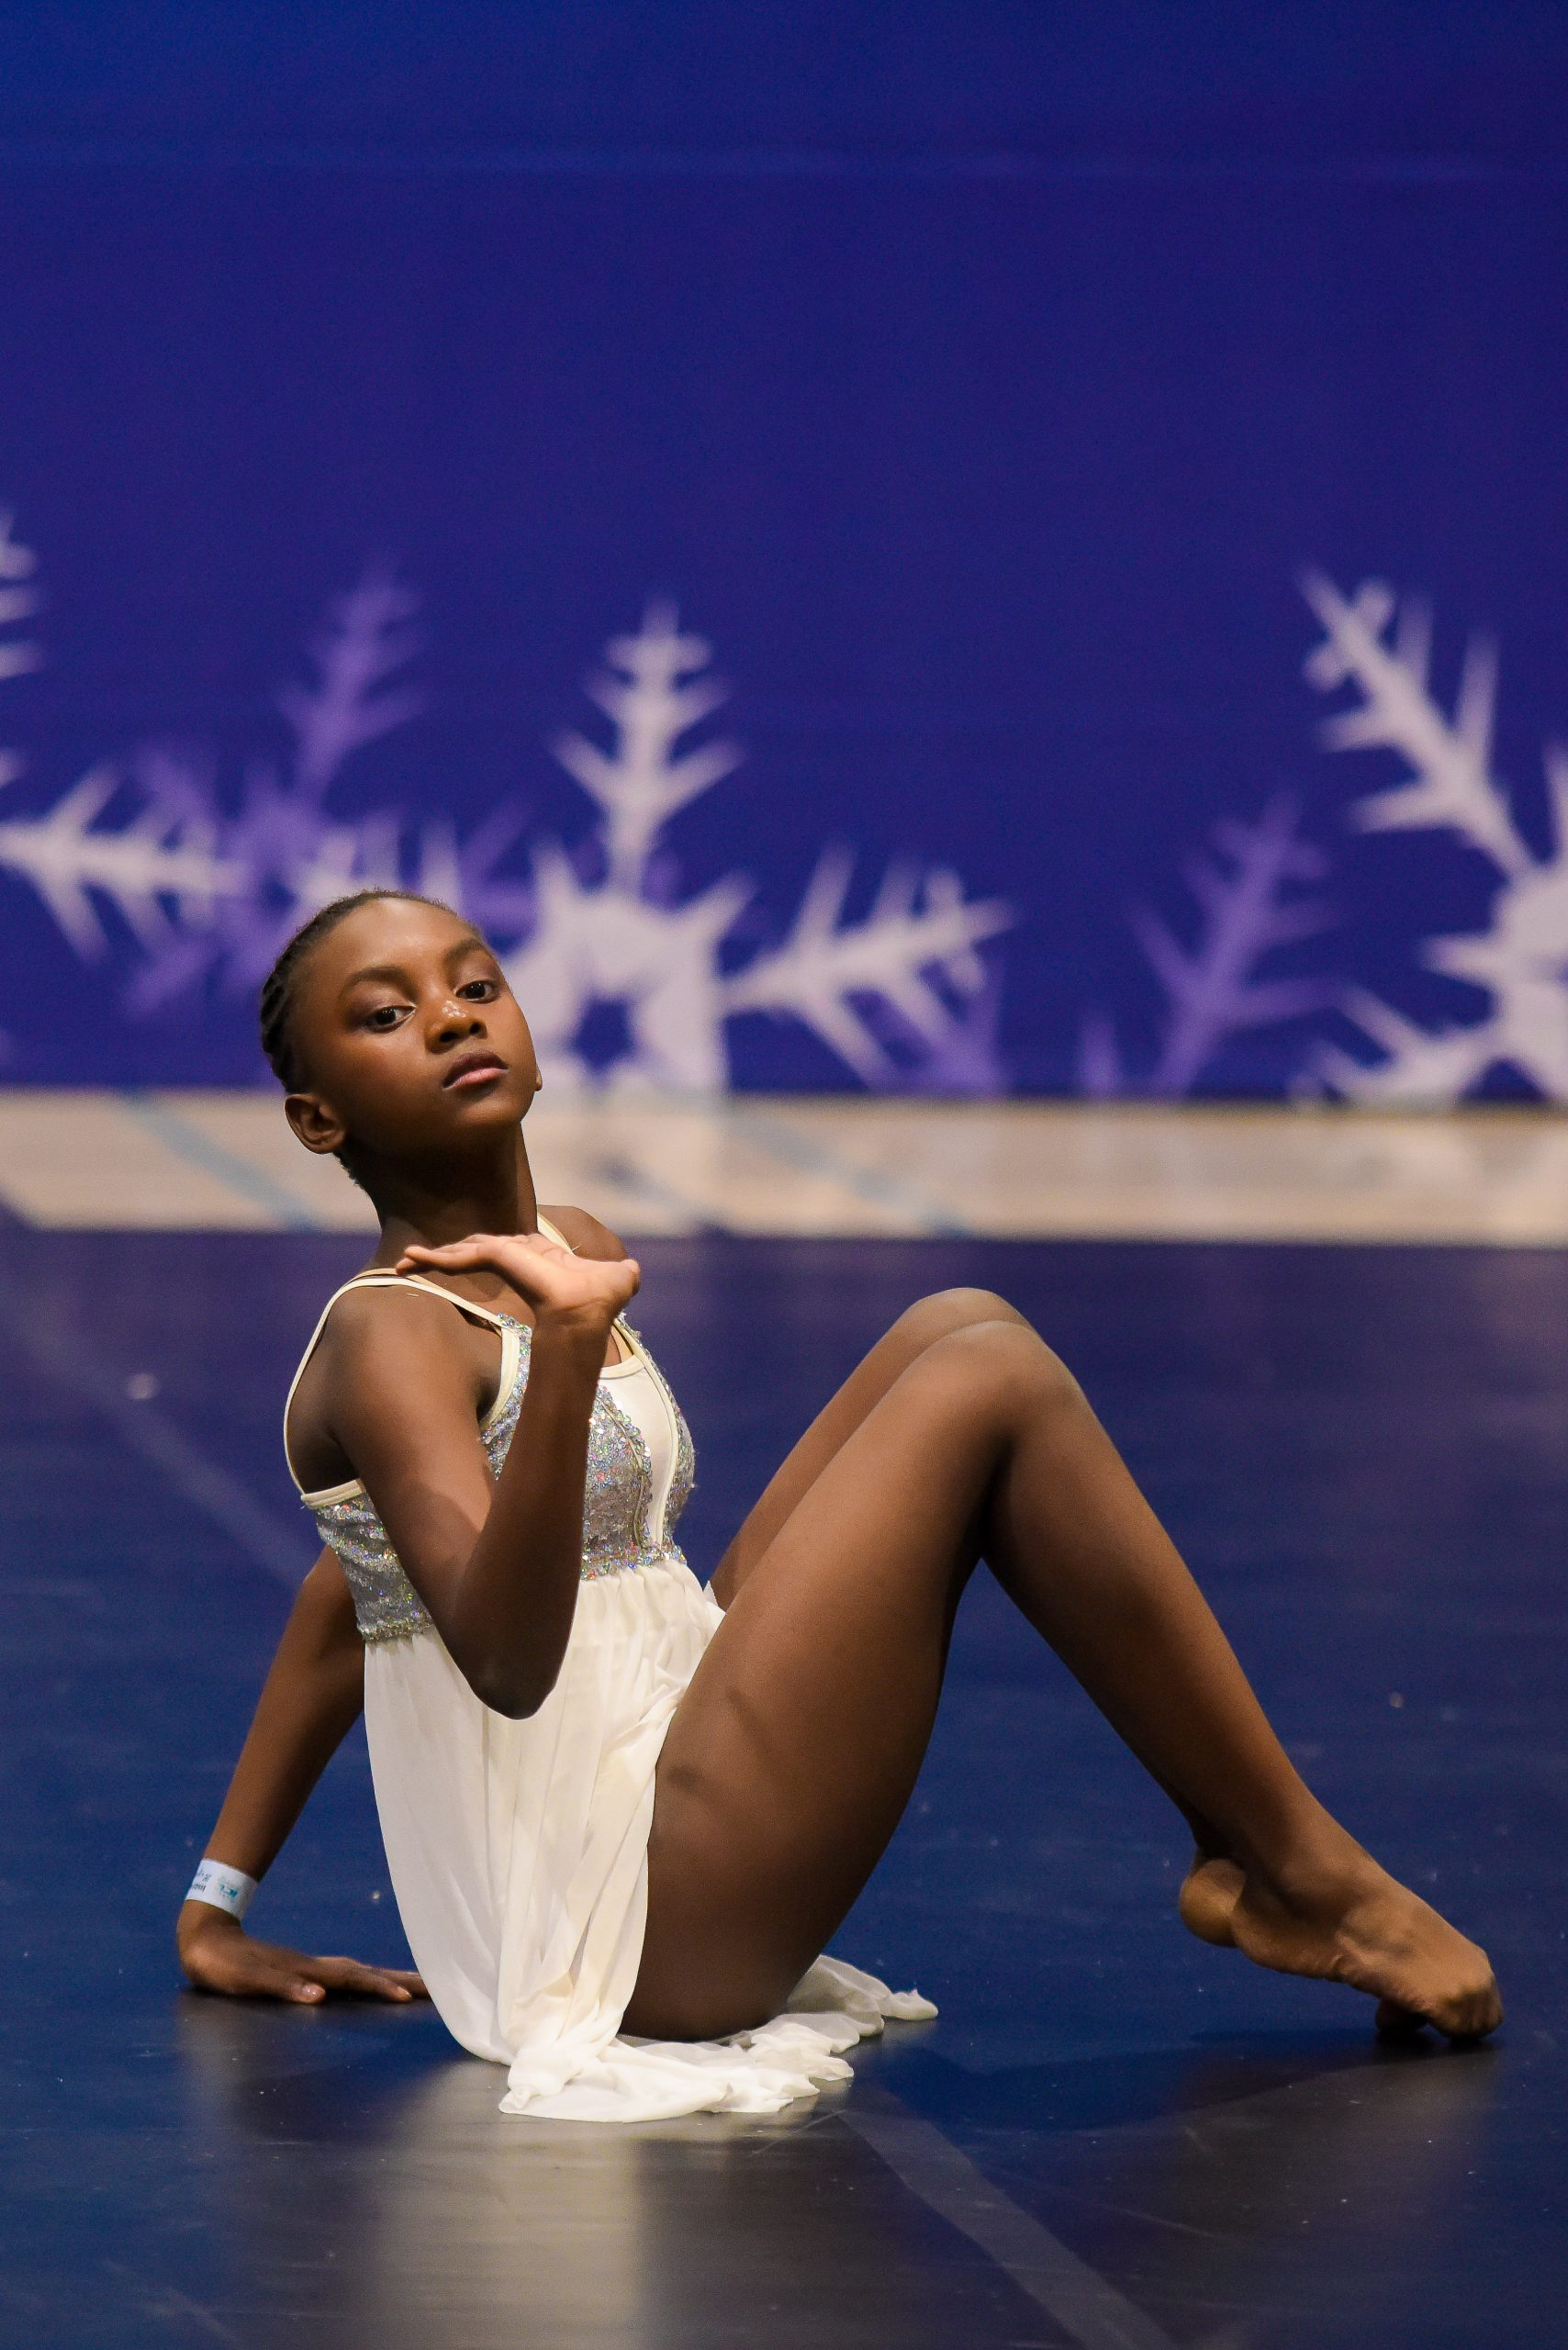 One dancer wearing a white dress performs floorwork at an ICE competition